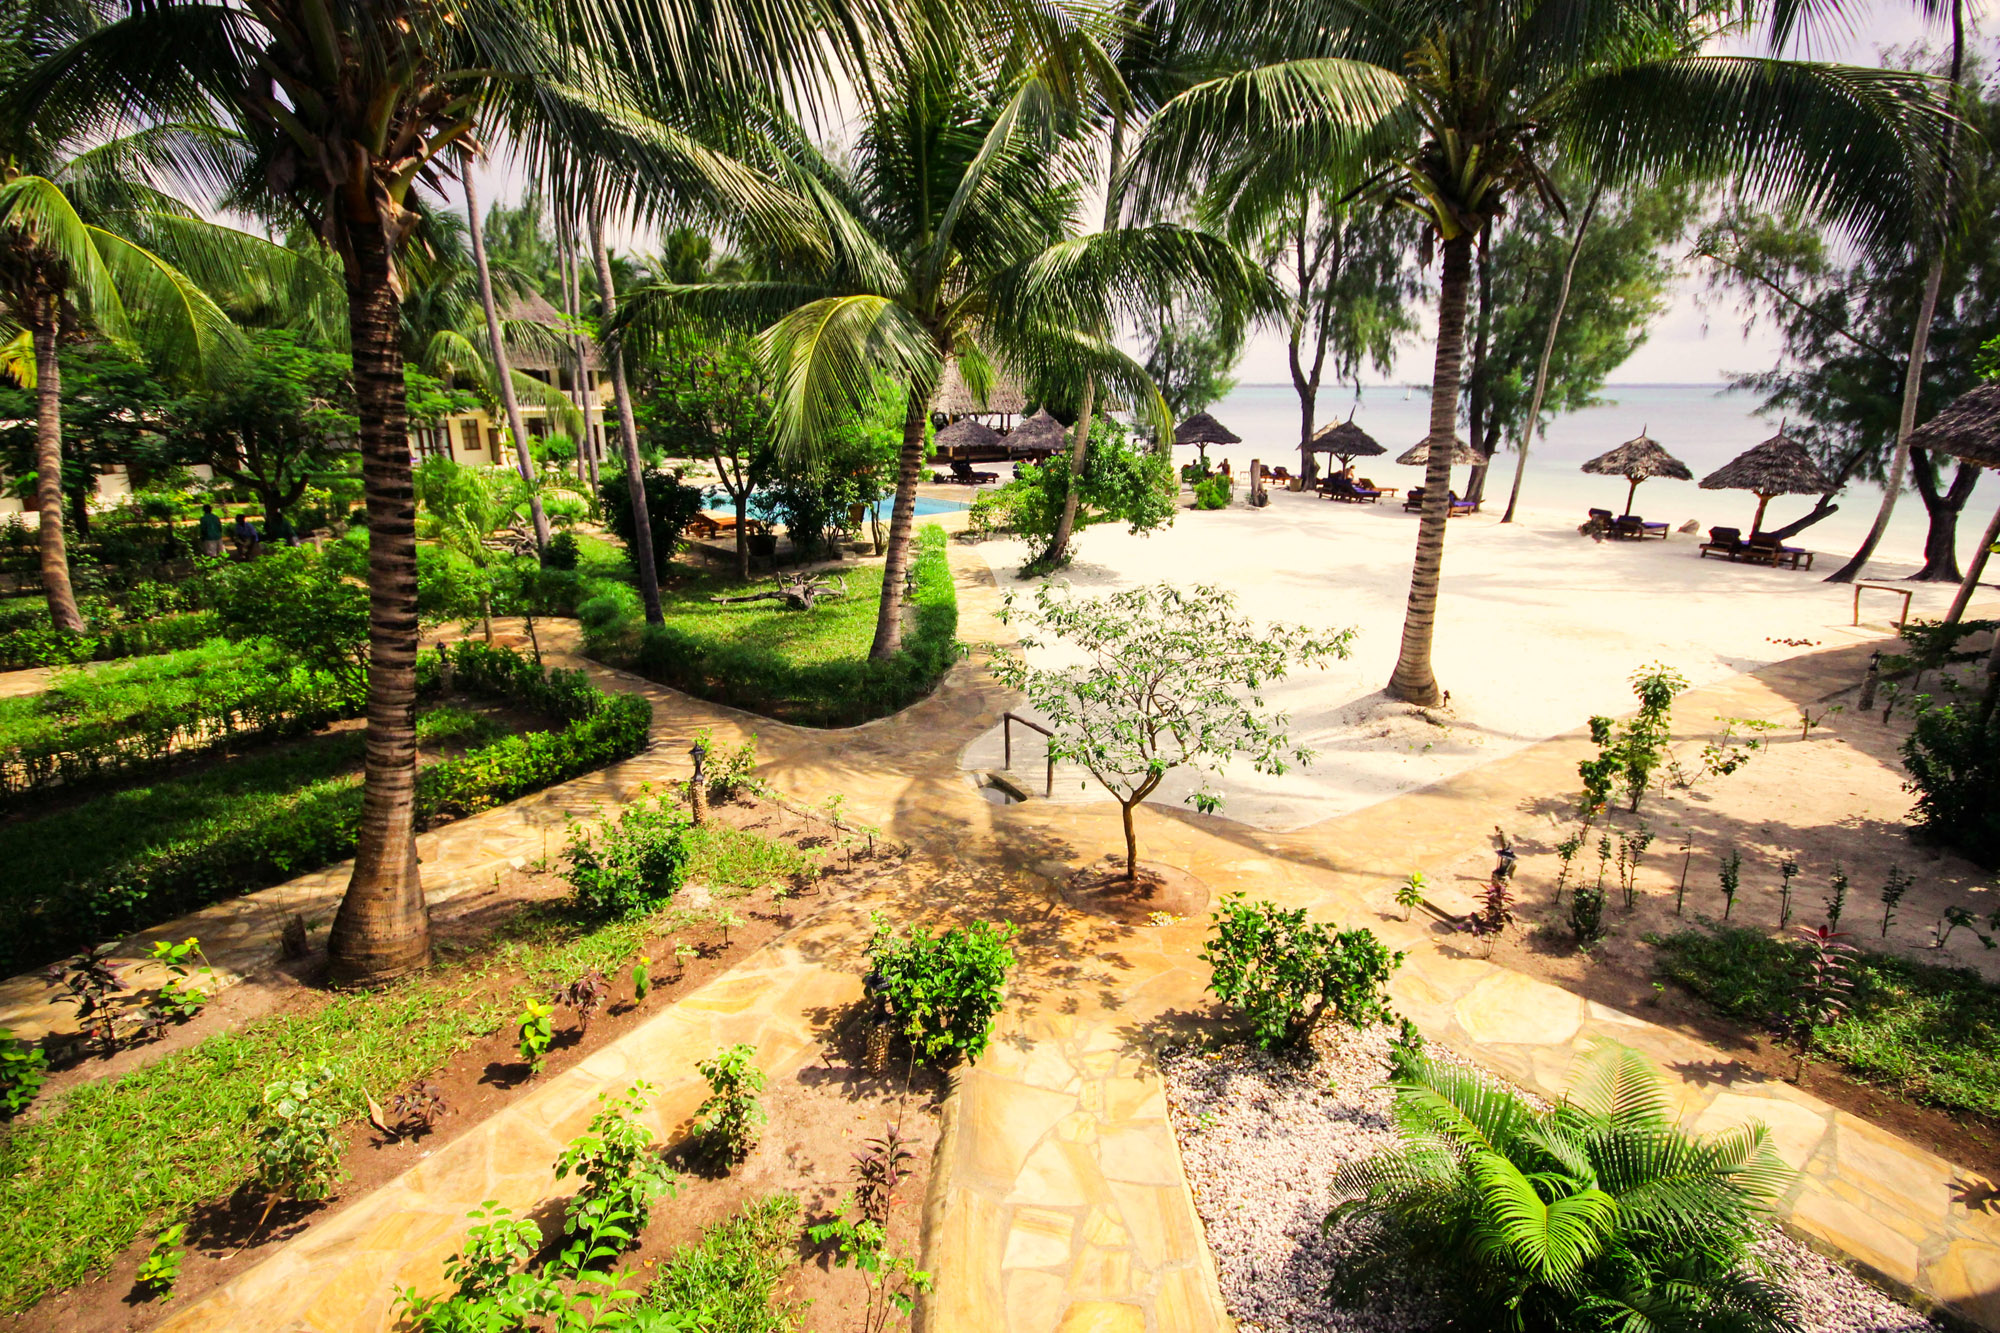 Wildfitness-Zanzibar-private-gardens